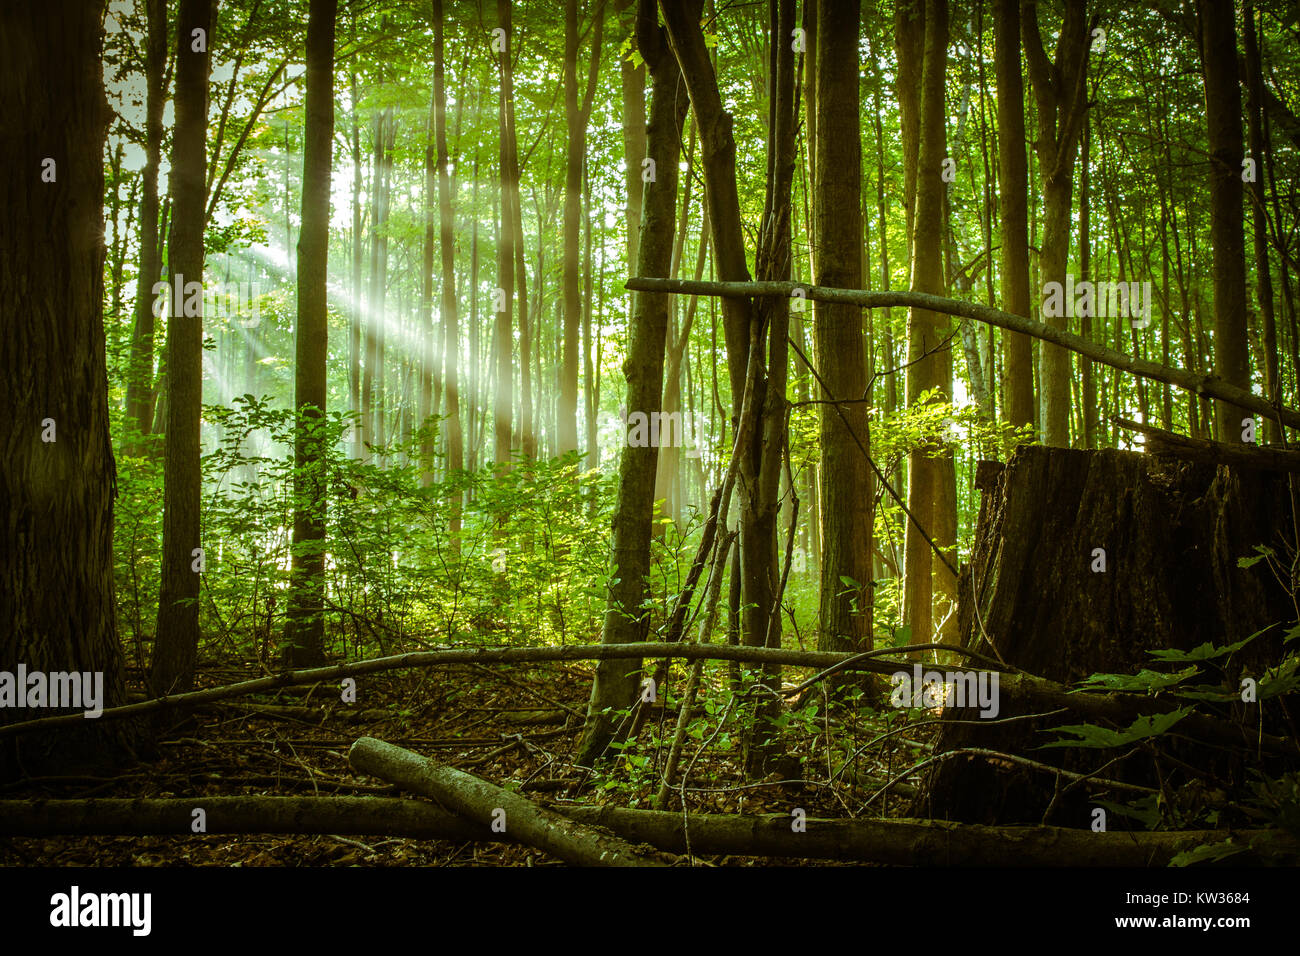 enchanted forest background.html